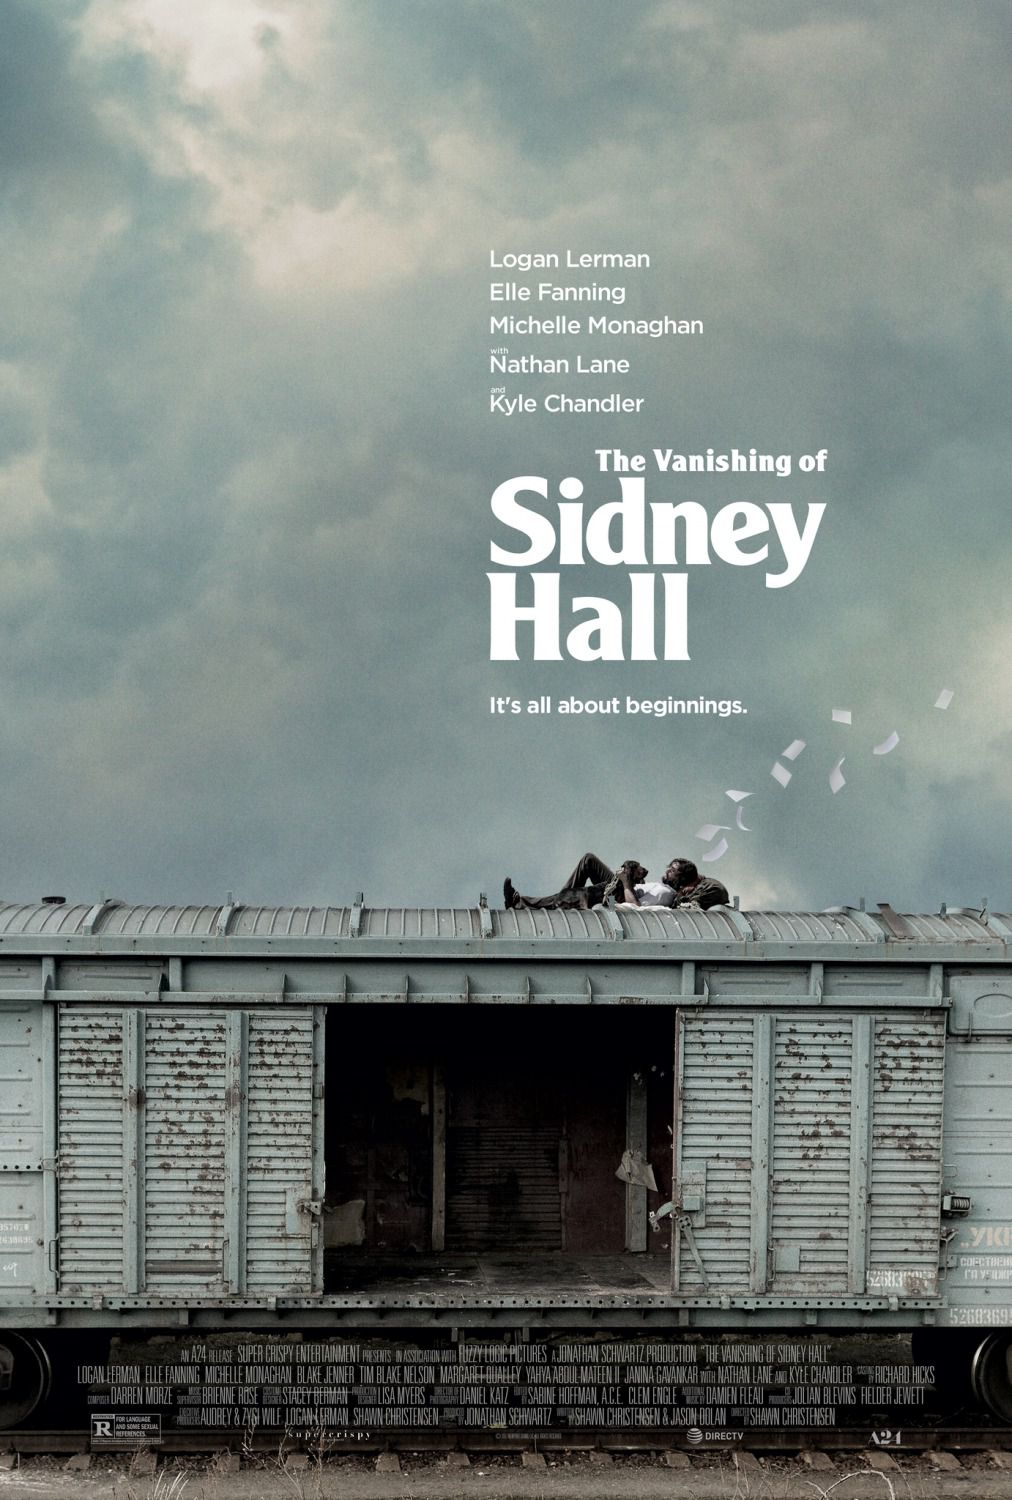 The Vanishing of Sidney Hall - film poster